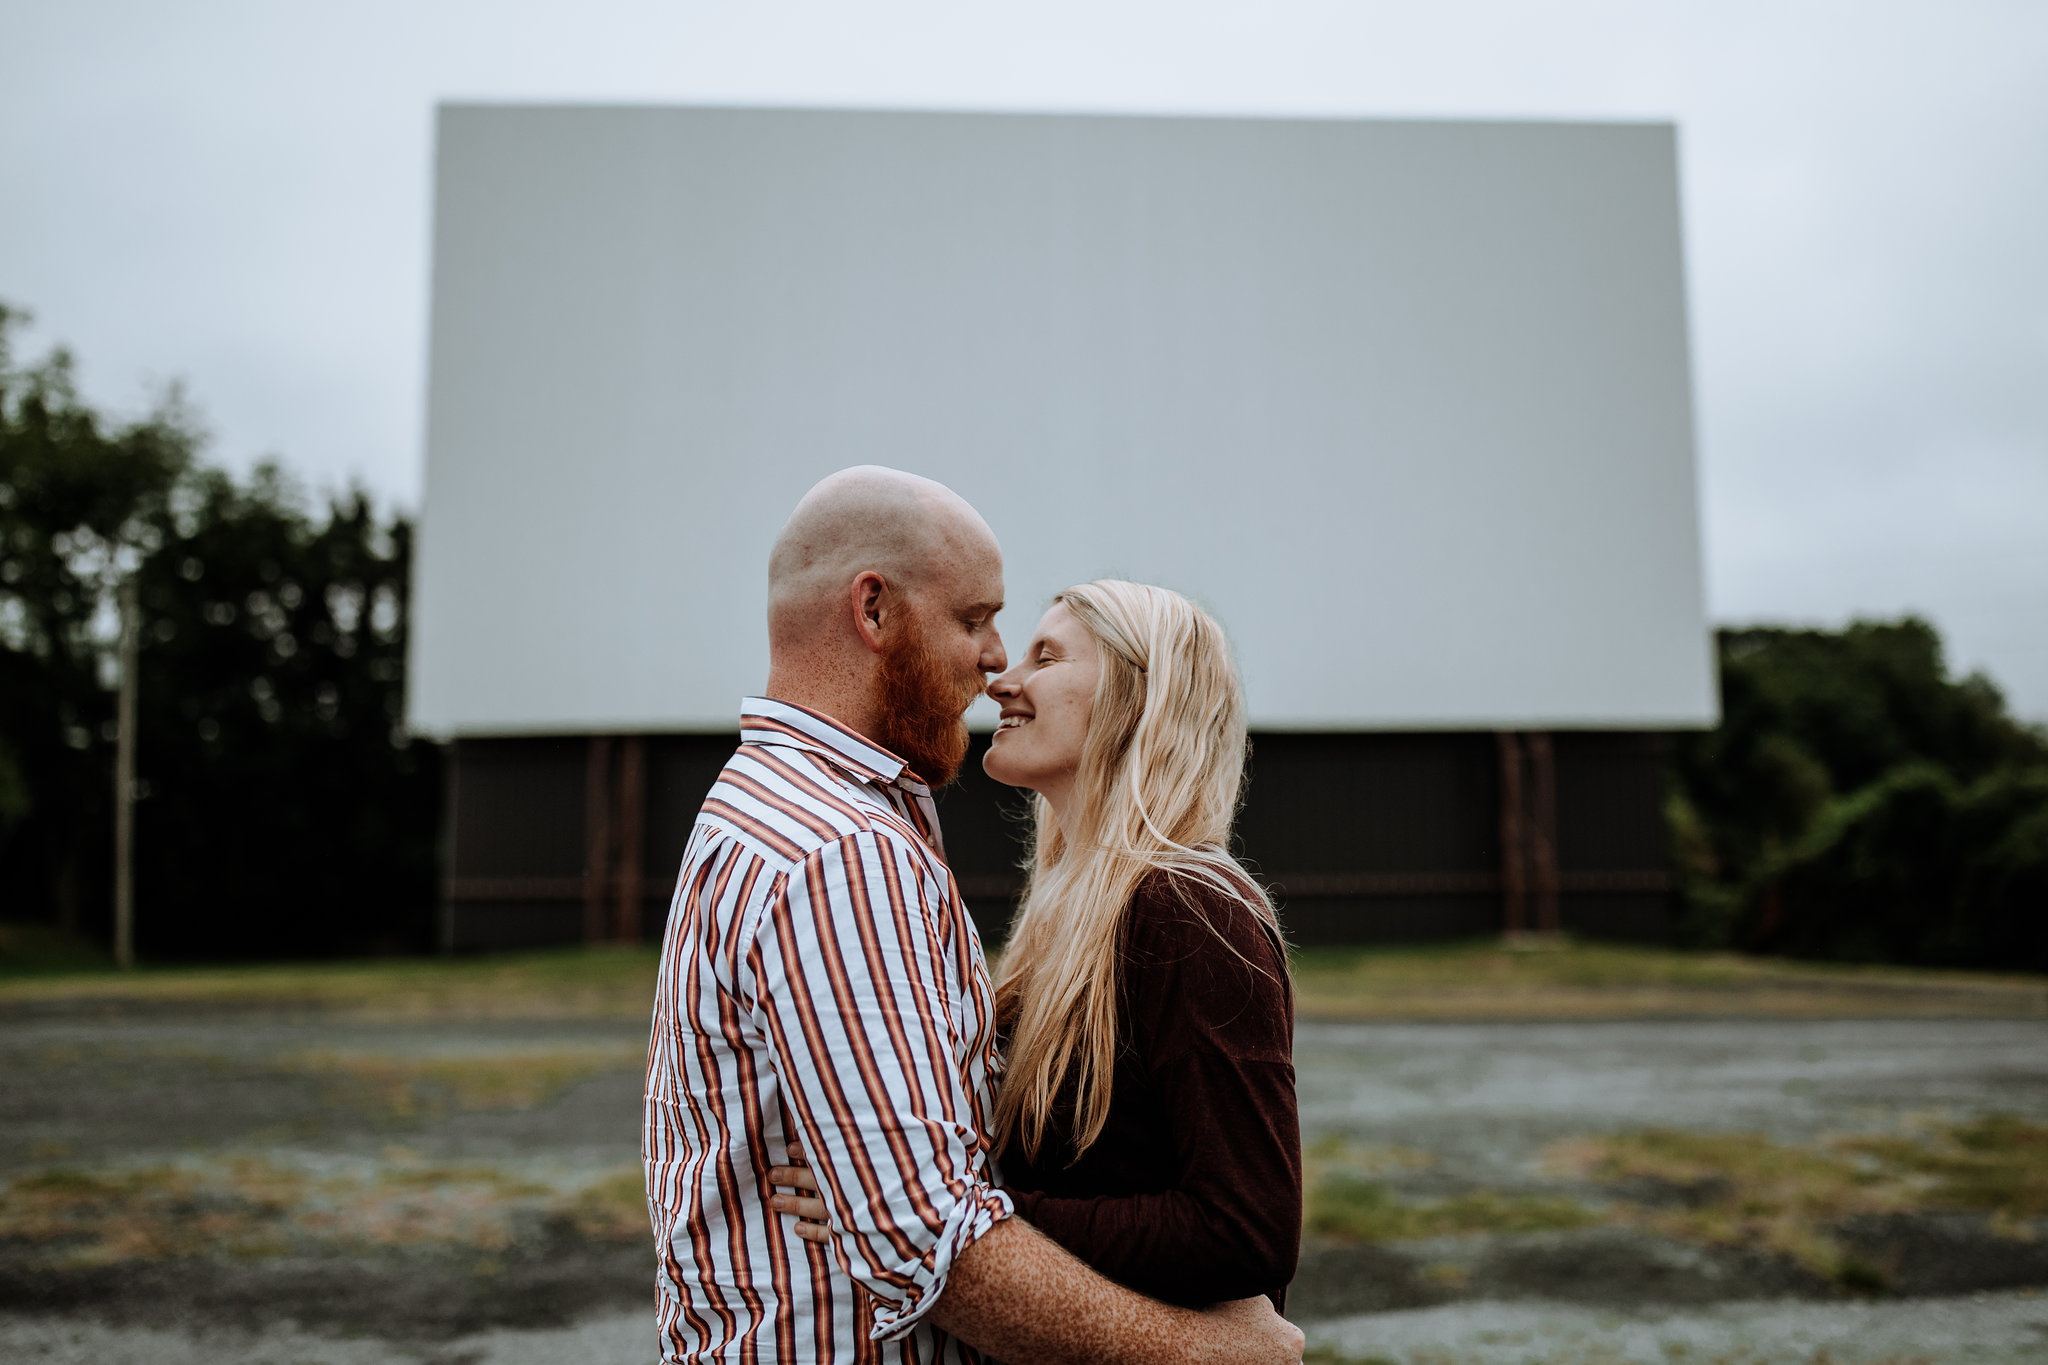 lancaster-engagement-photography-drive-in-movie-theater-2